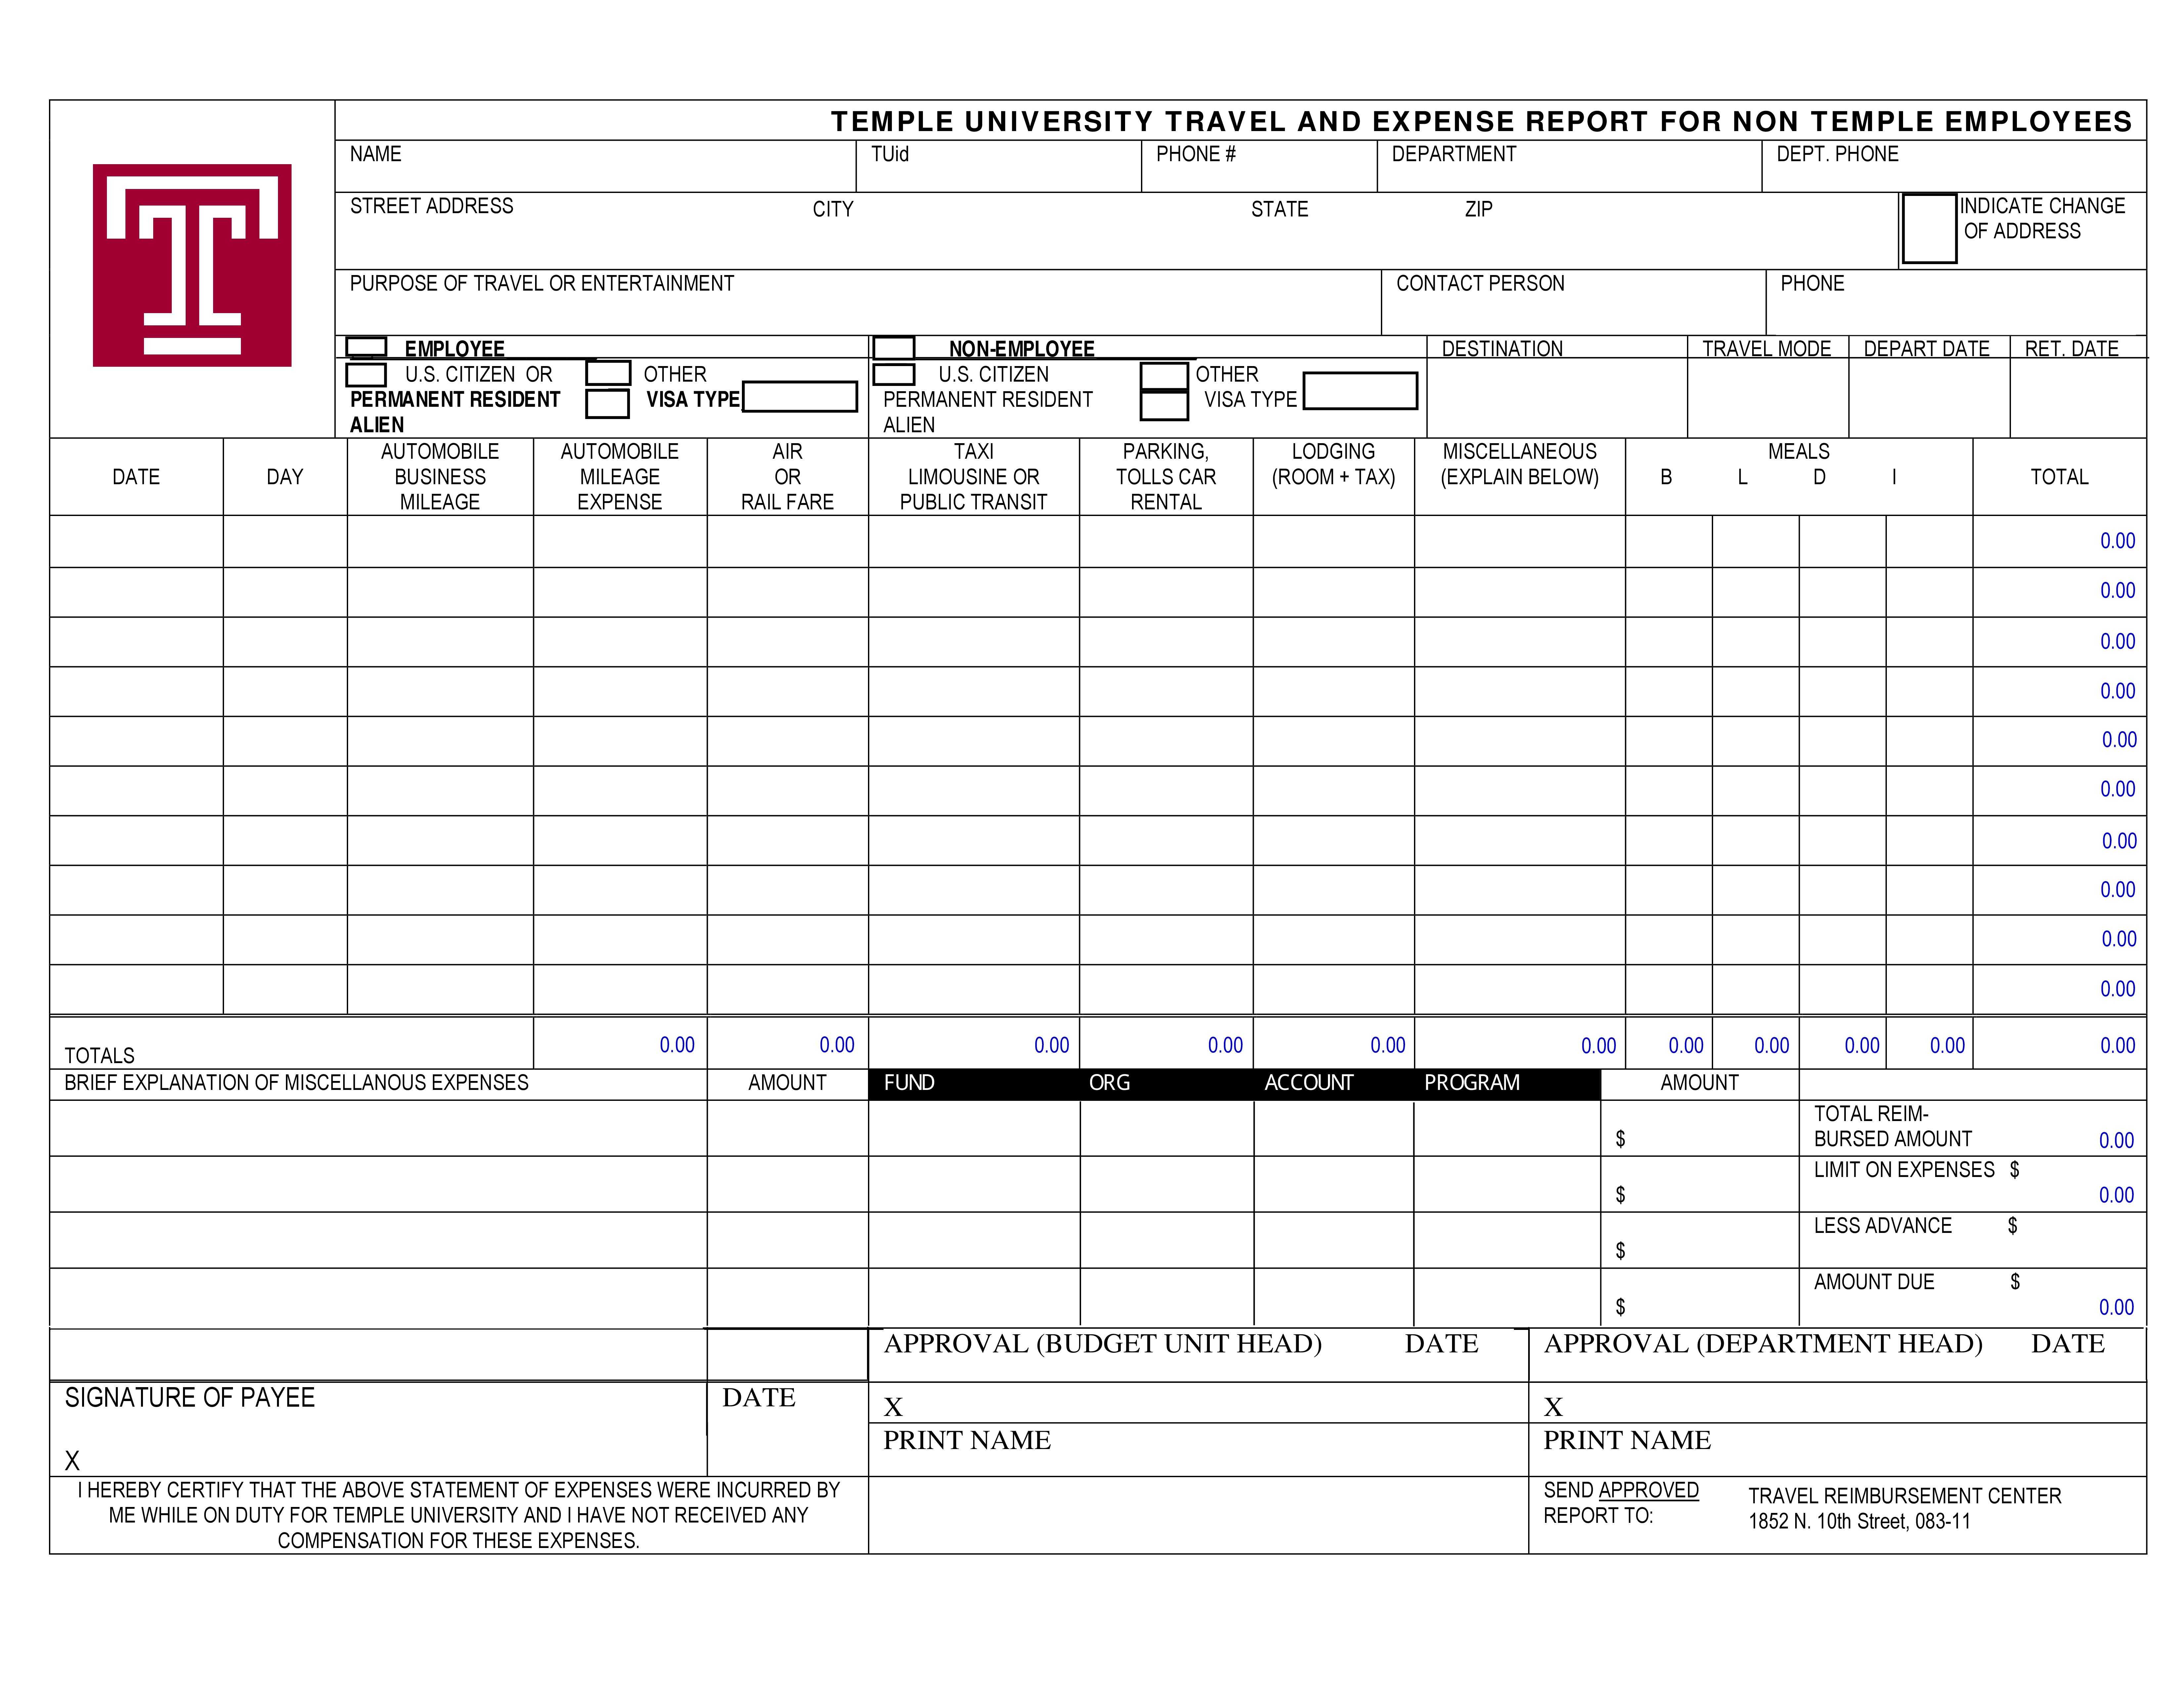 expense-report-sample-expense-report-template-41 Sample Expense Report Guidelines on healthcare revenue, completed business, for reimbursement, yearly total, business income, quicken income,